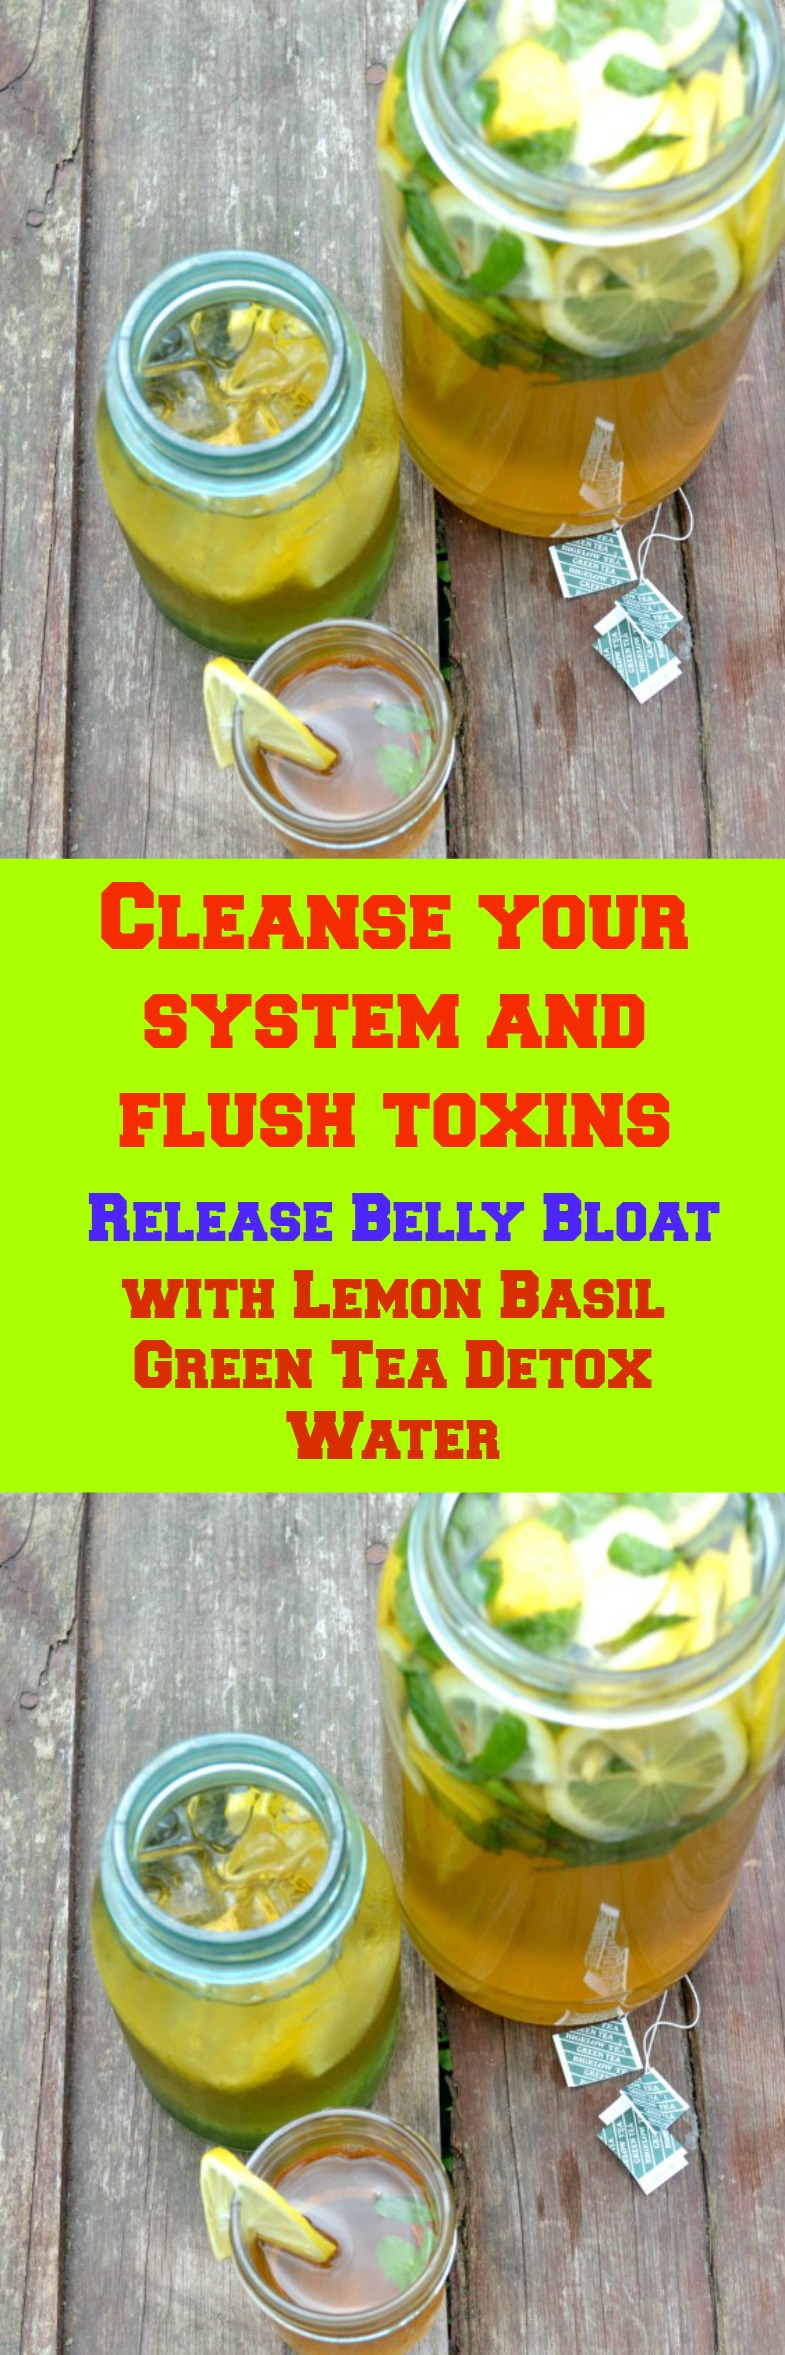 To cleanse your system and flush toxins try&nbsp;<strong srcset=